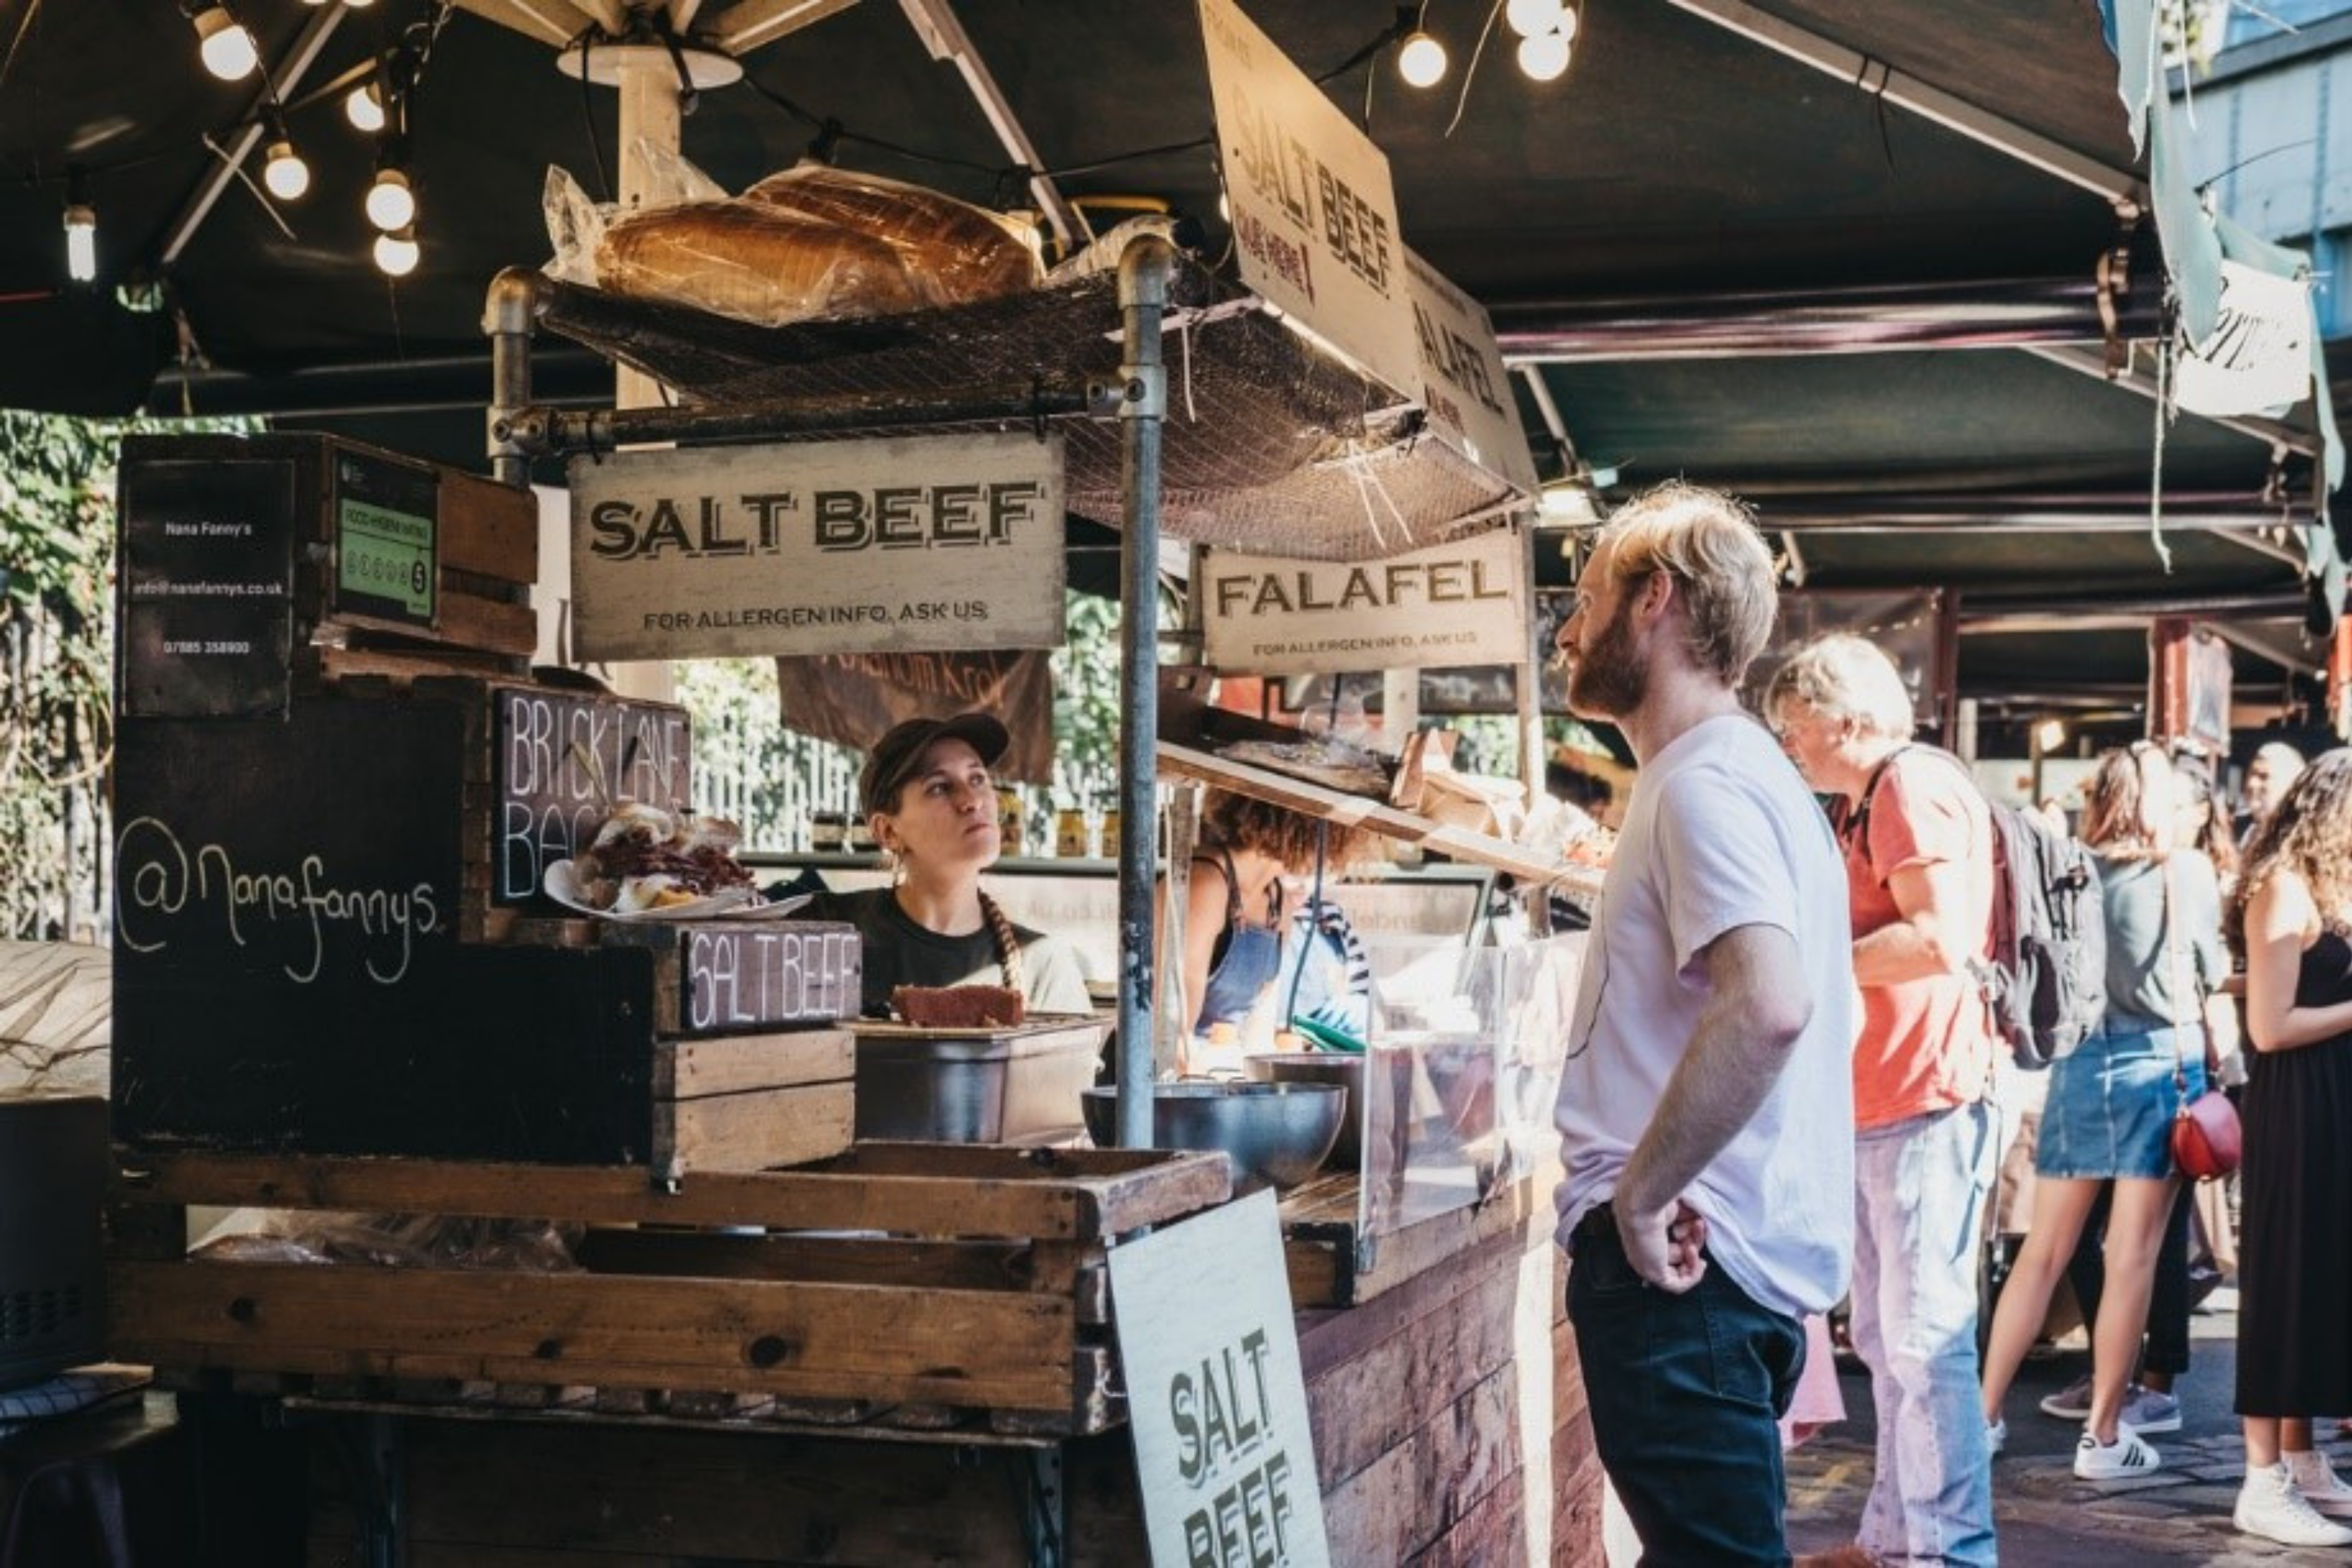 Life in The UK: A Foodie's Guide to London